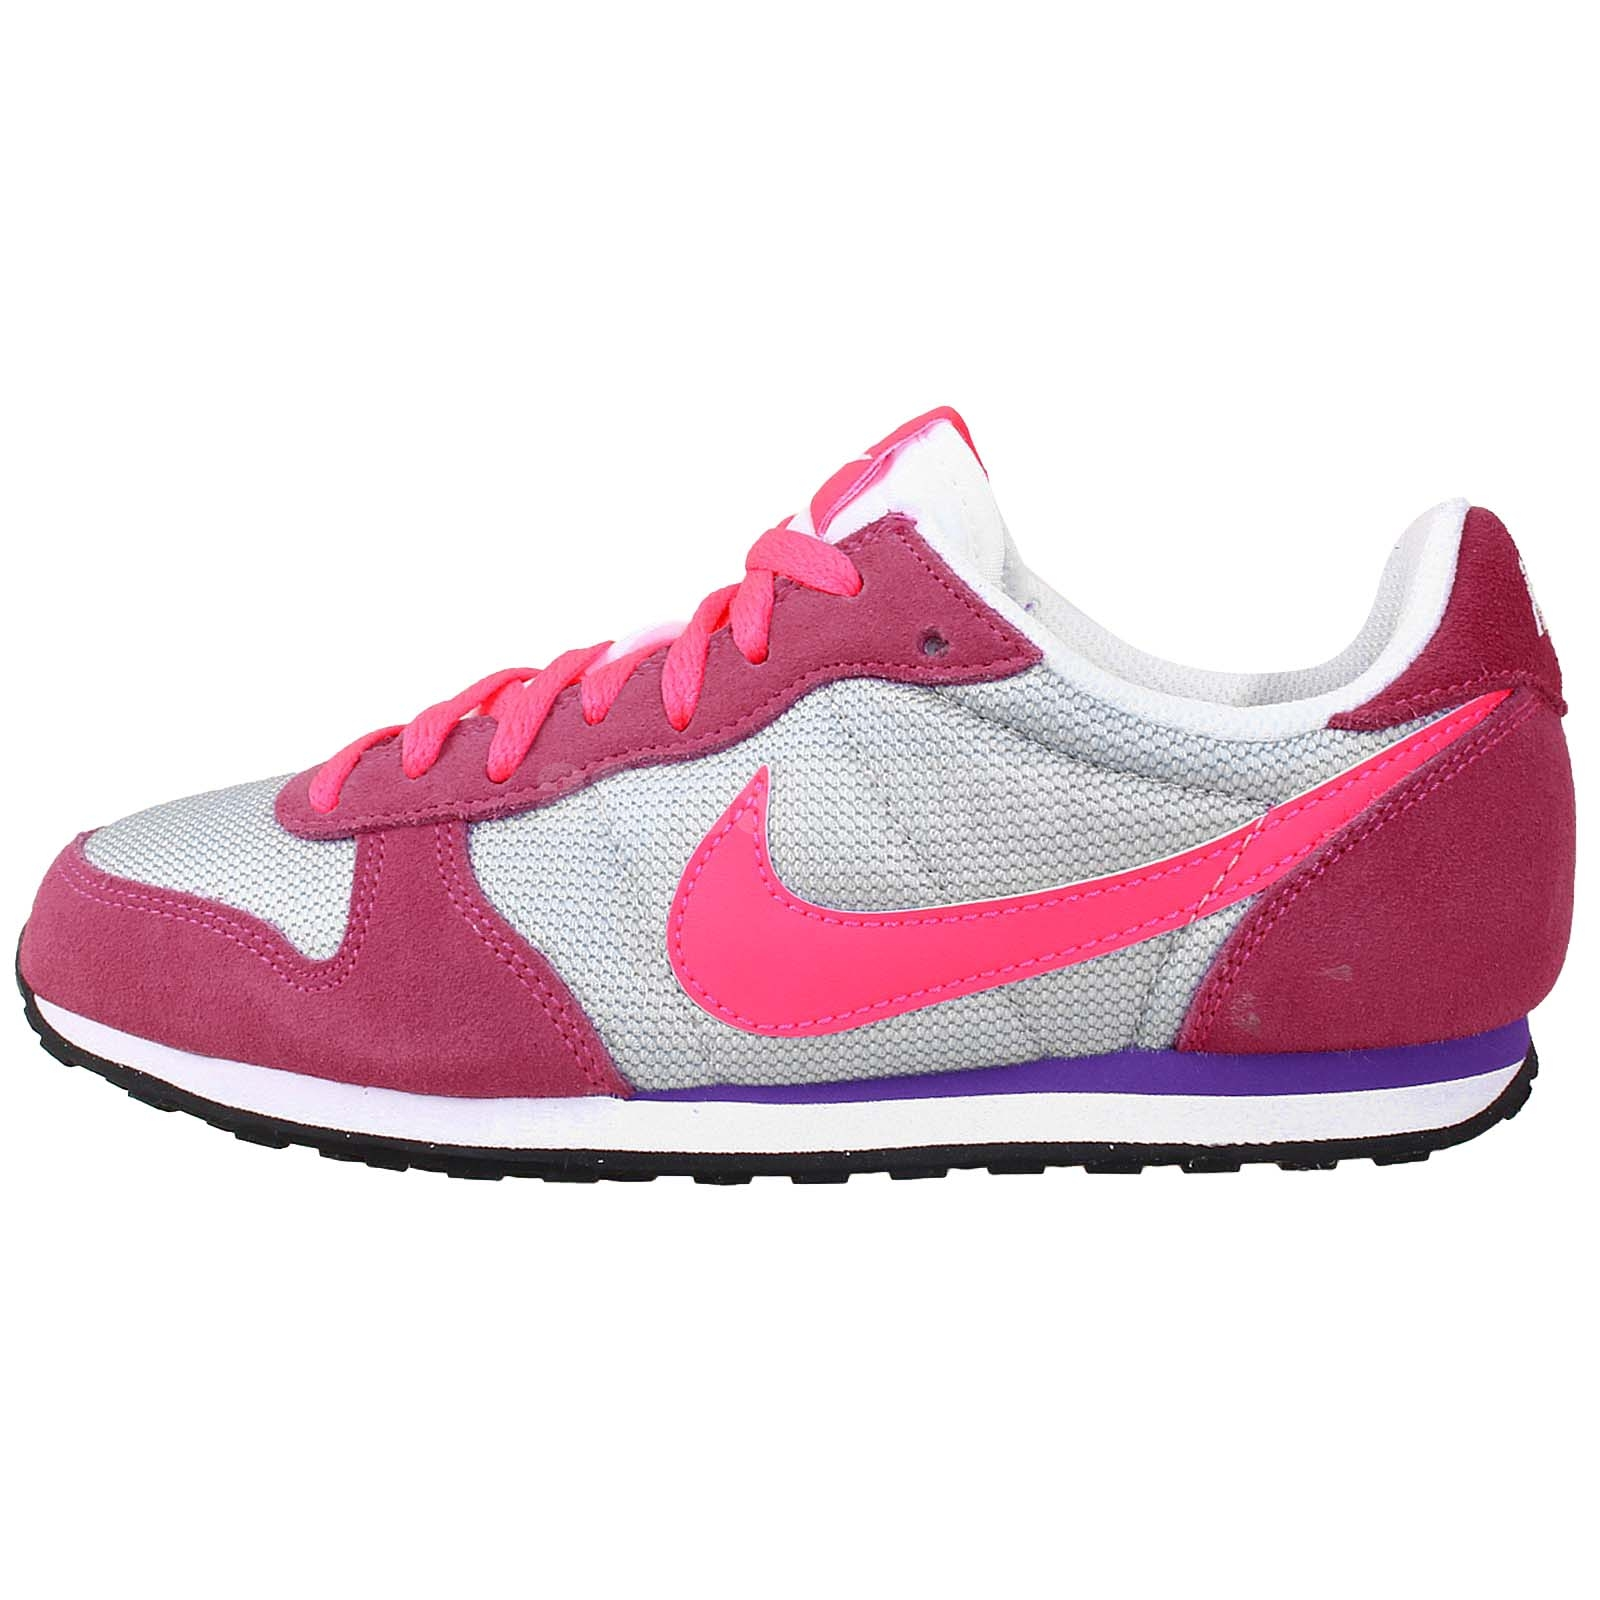 Lastest  Gorgeous Womens Shoes Are Perfect For Urban Use, Special Occasions, Casual Footwear, And Active Wear For Those Who Love To Stay Fit, Our Range Of Womens Sneakers Are Ideal For Those Who Love Big Brand Offerings Such As Nike